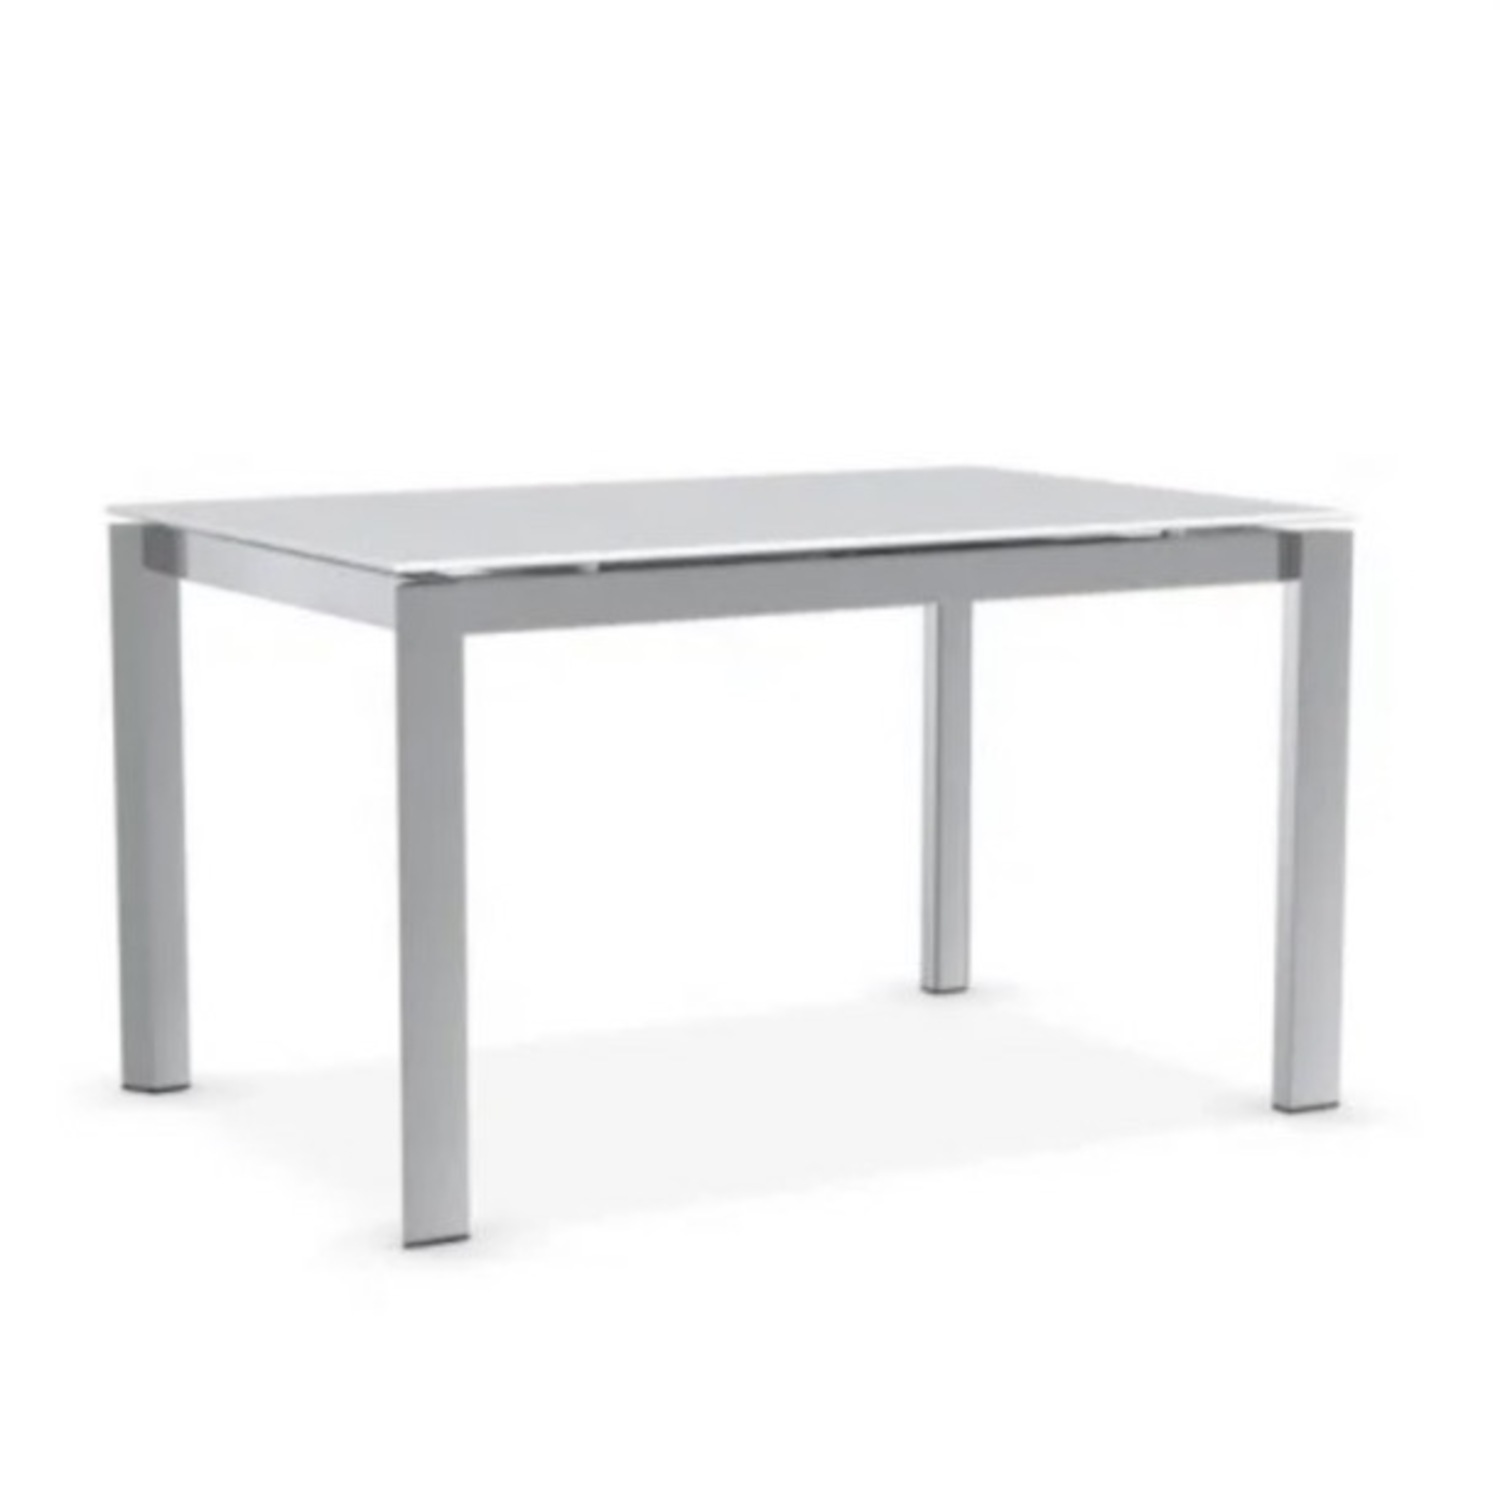 Calligaris Duca Extending Dining Table - image-1